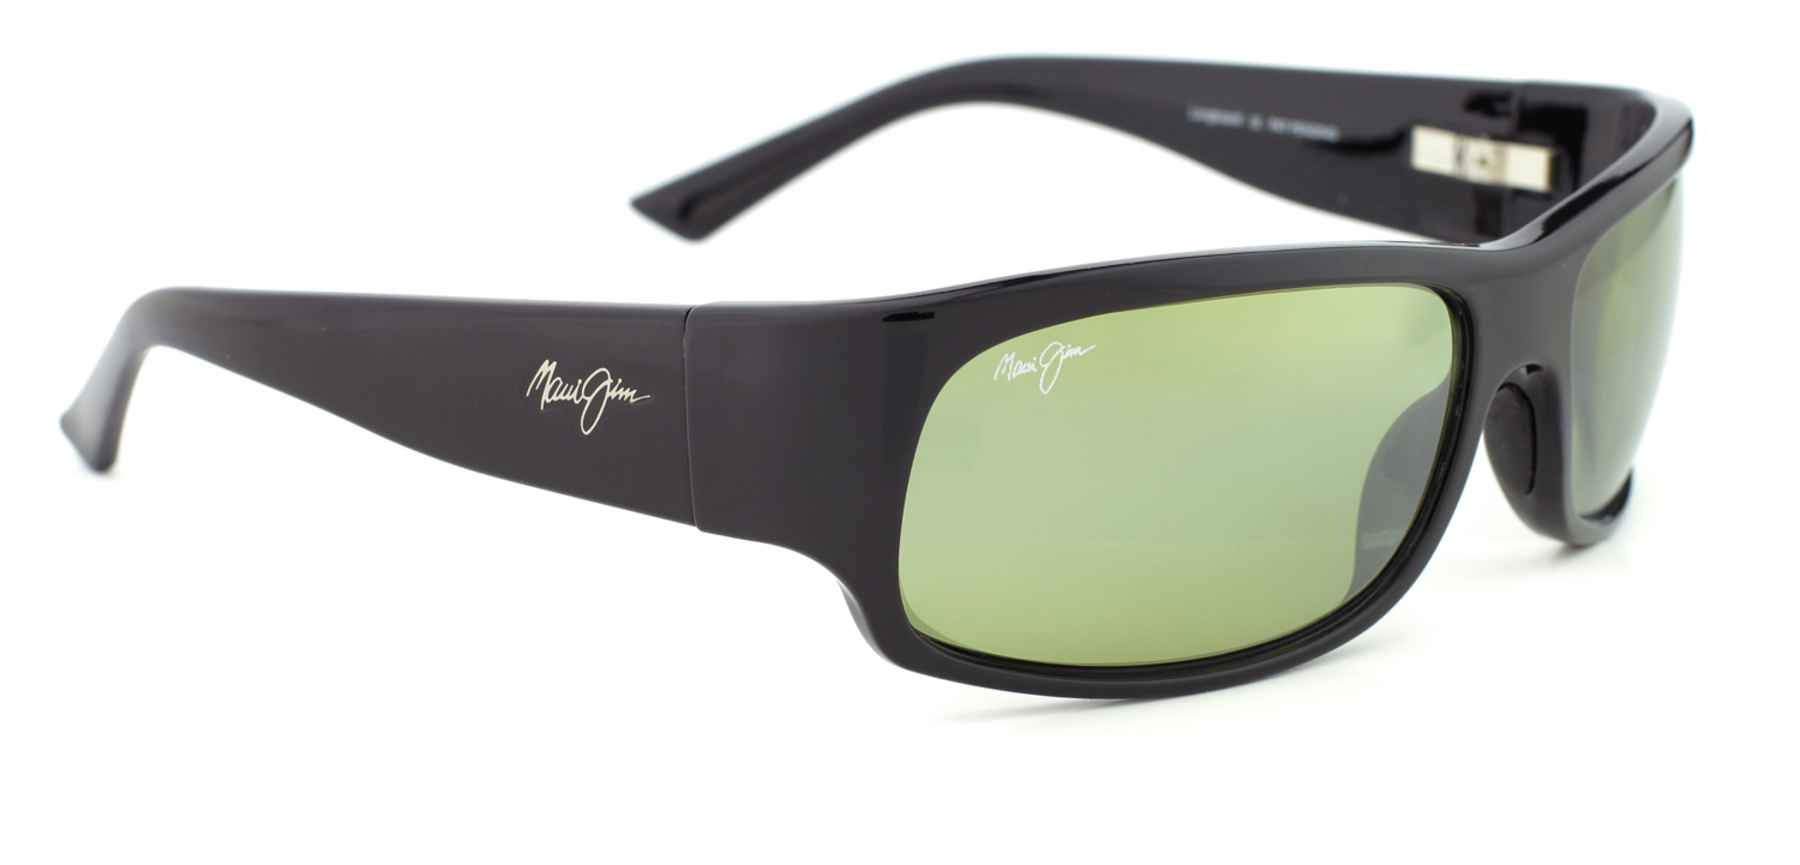 Best fishing sunglasses for 2015 2016 hatch magazine for Maui jim fishing glasses